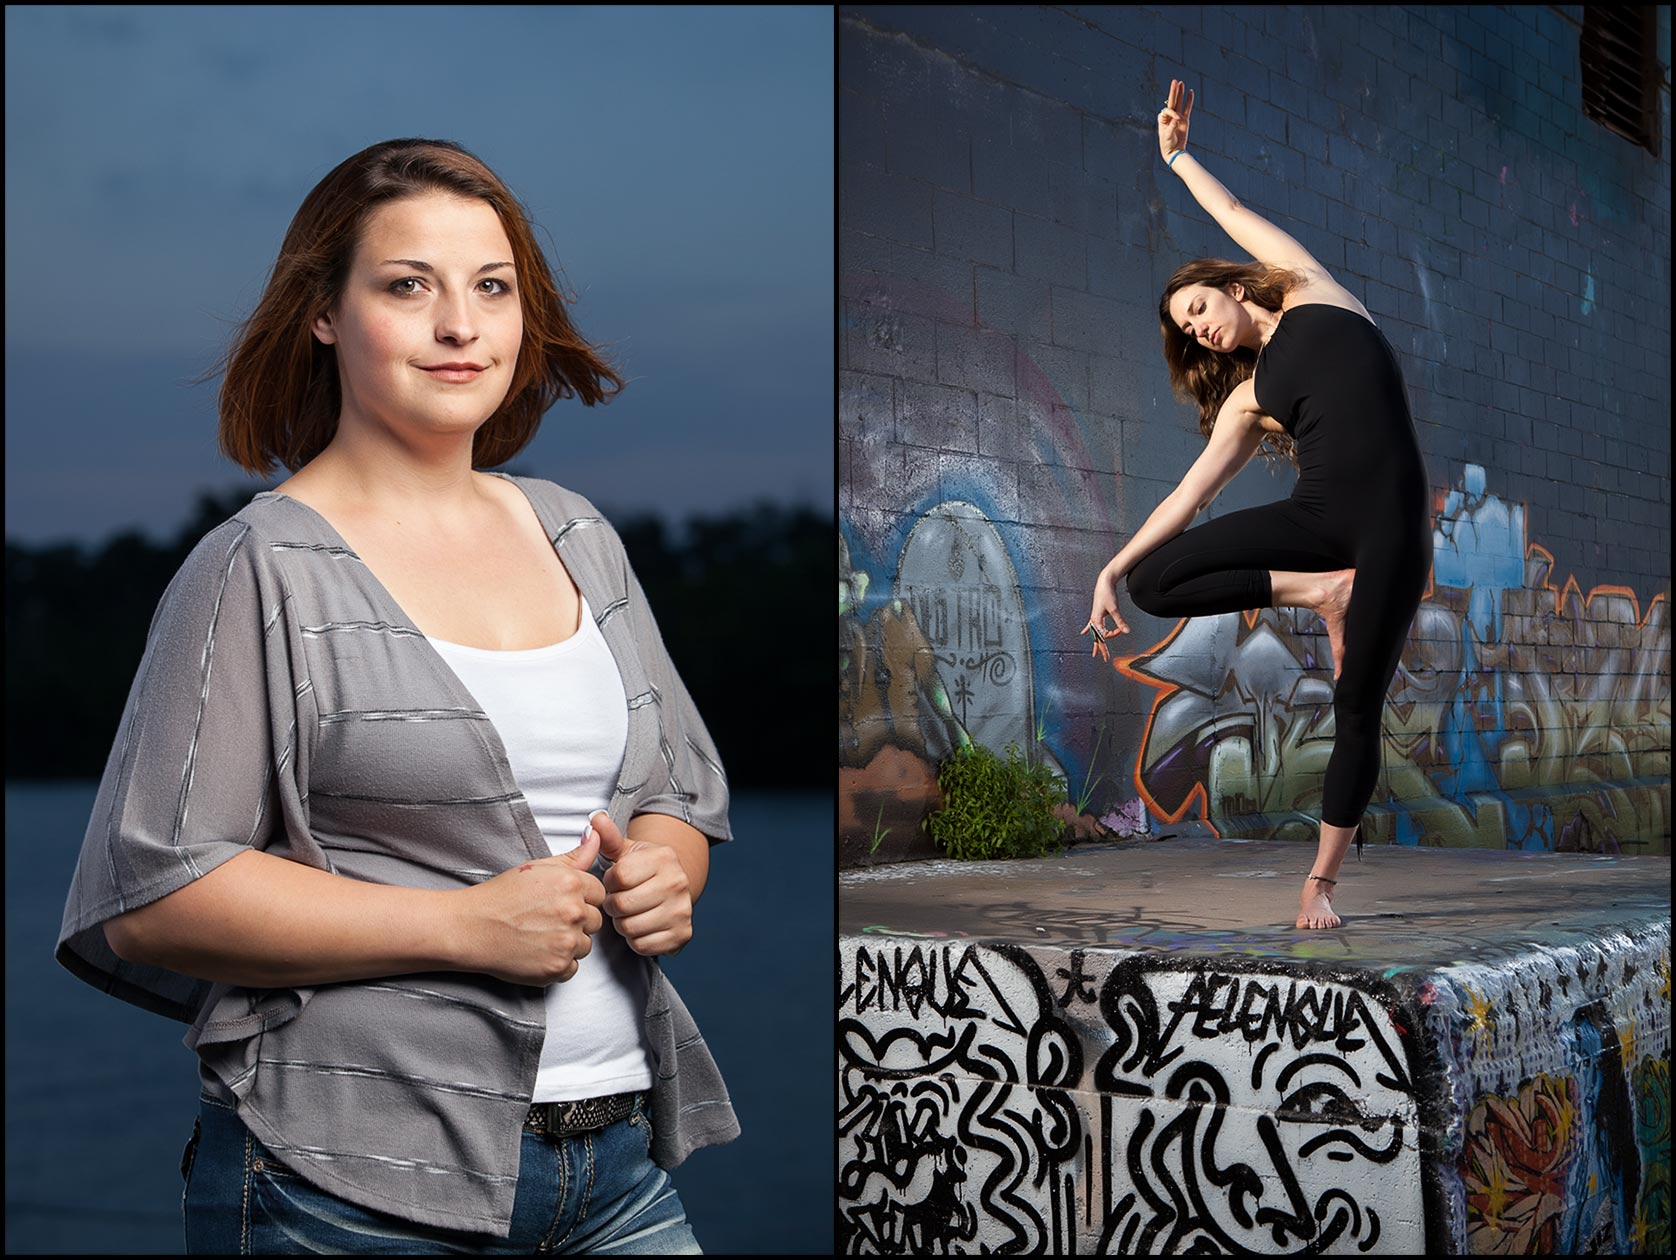 A portrait of a female weight loss clinic advisor outside at dusk (L), A woman doing yoga poses outdoors on concrete painted with urban street art (R).